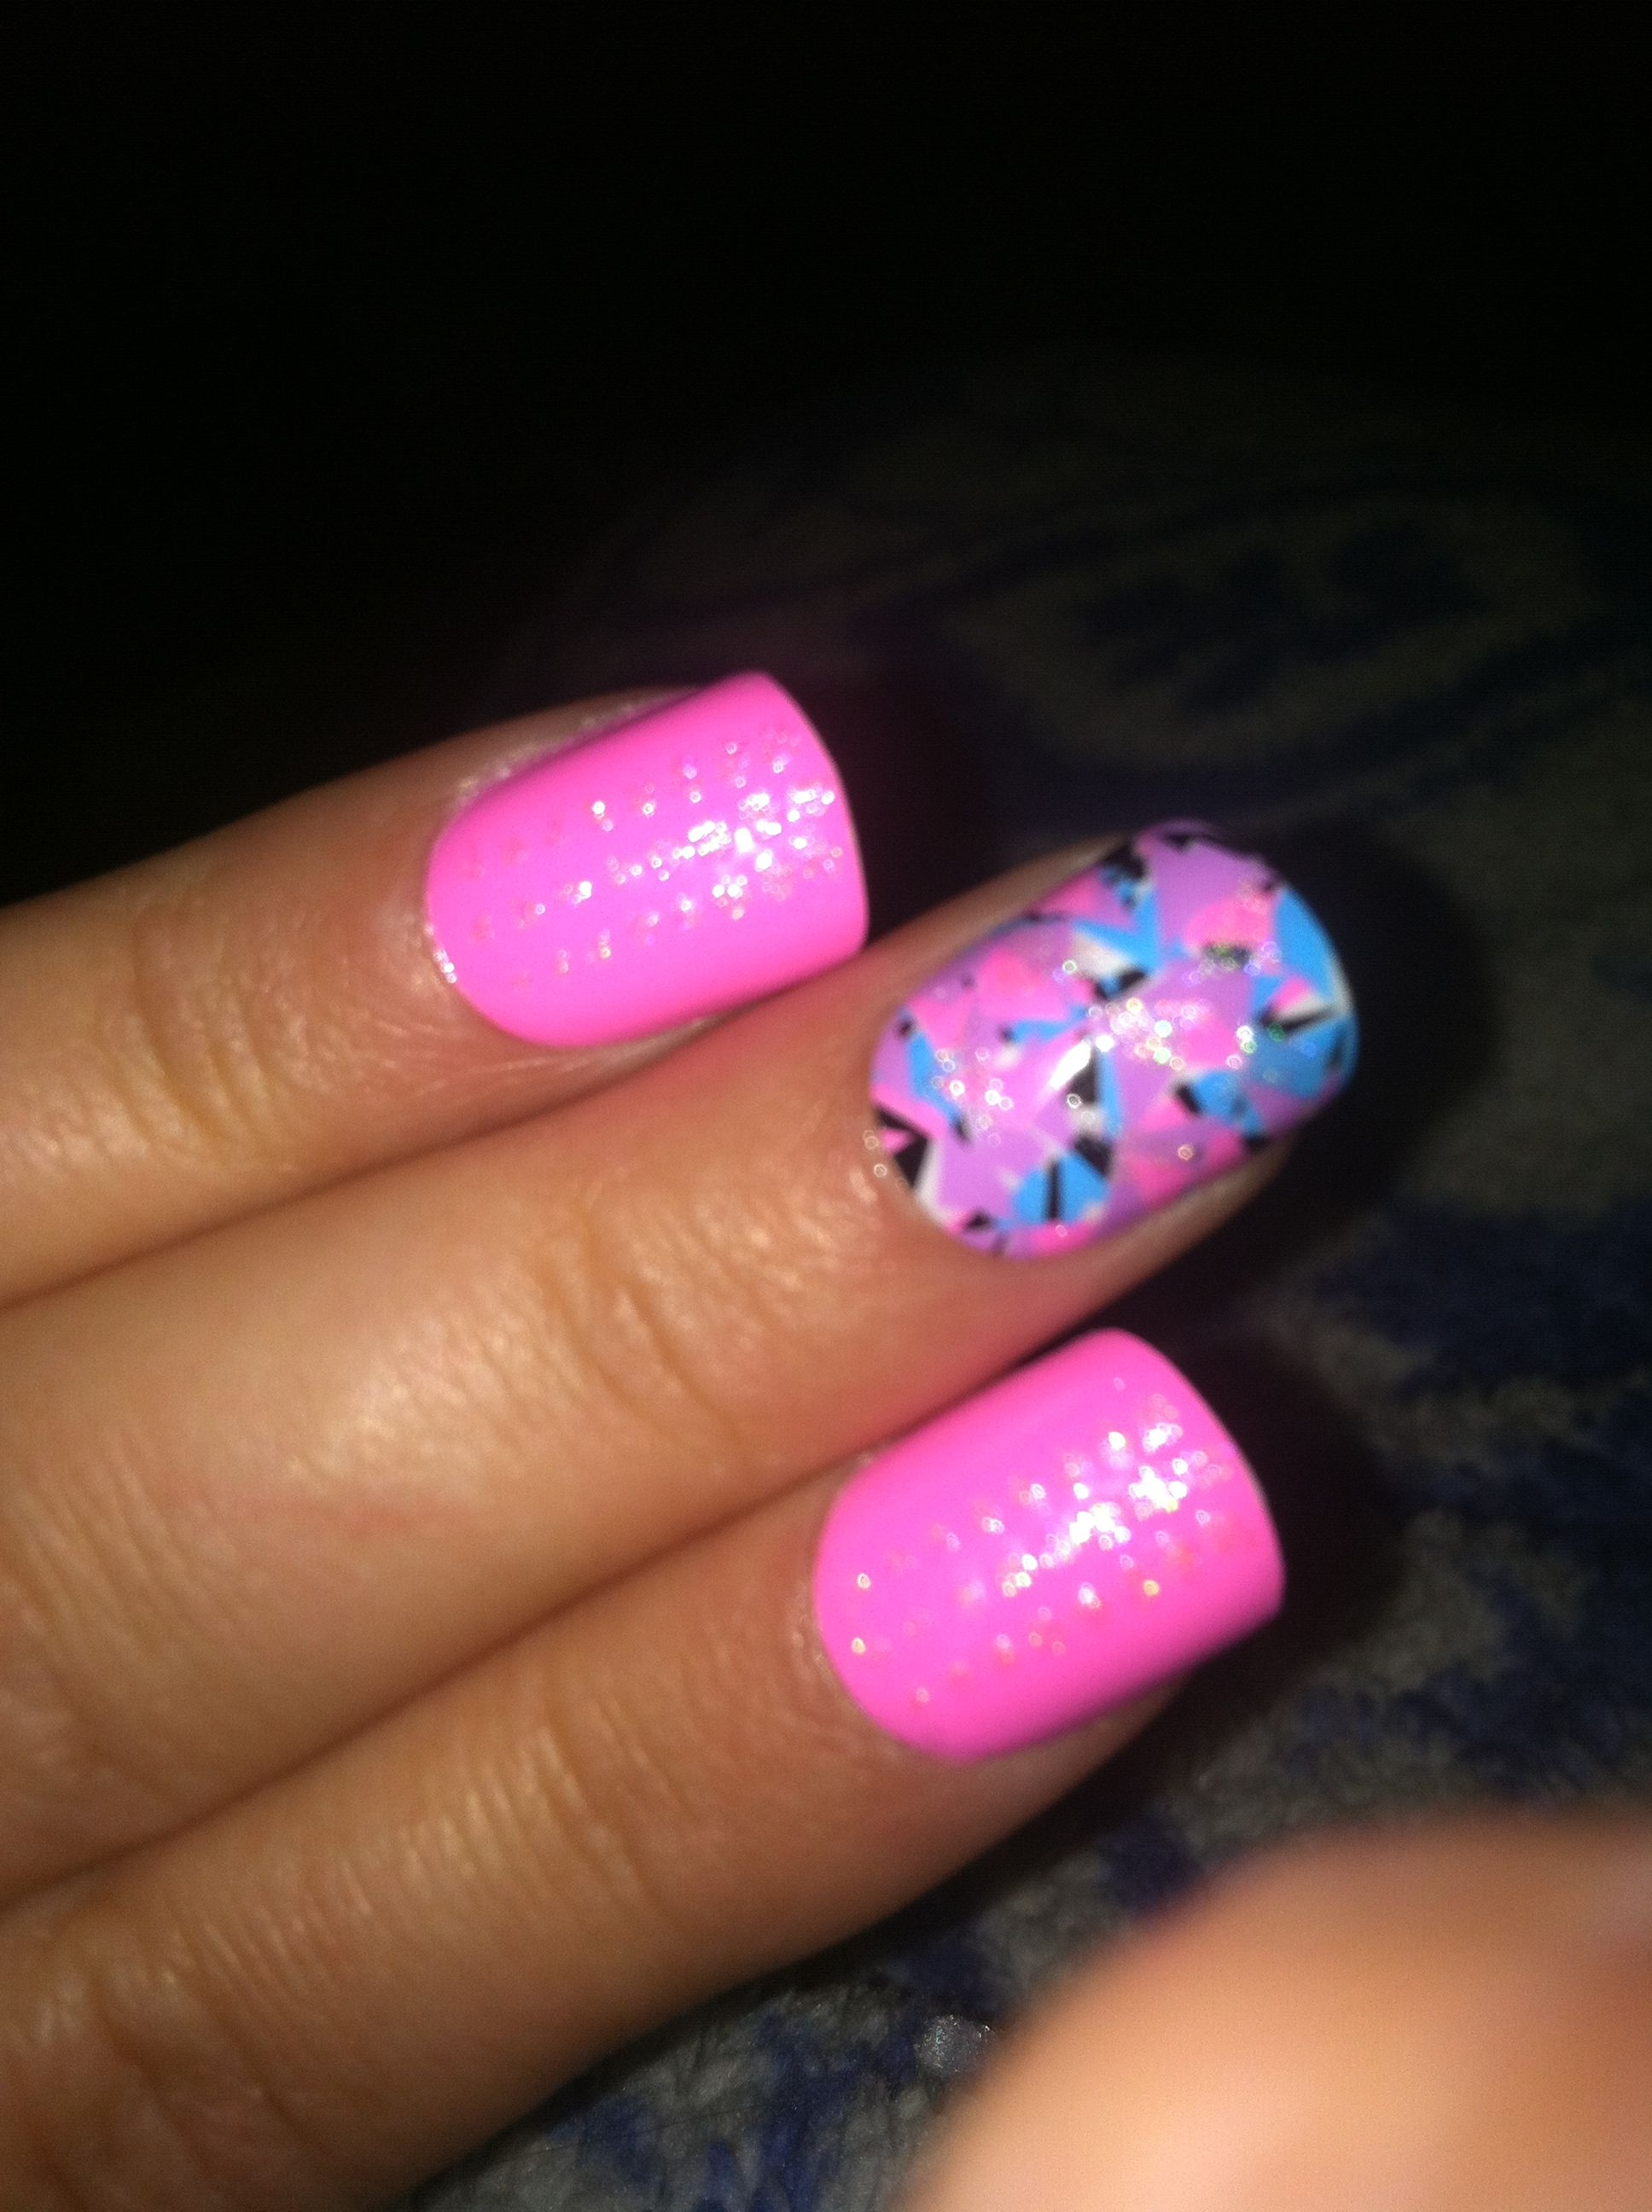 My new nails!!!